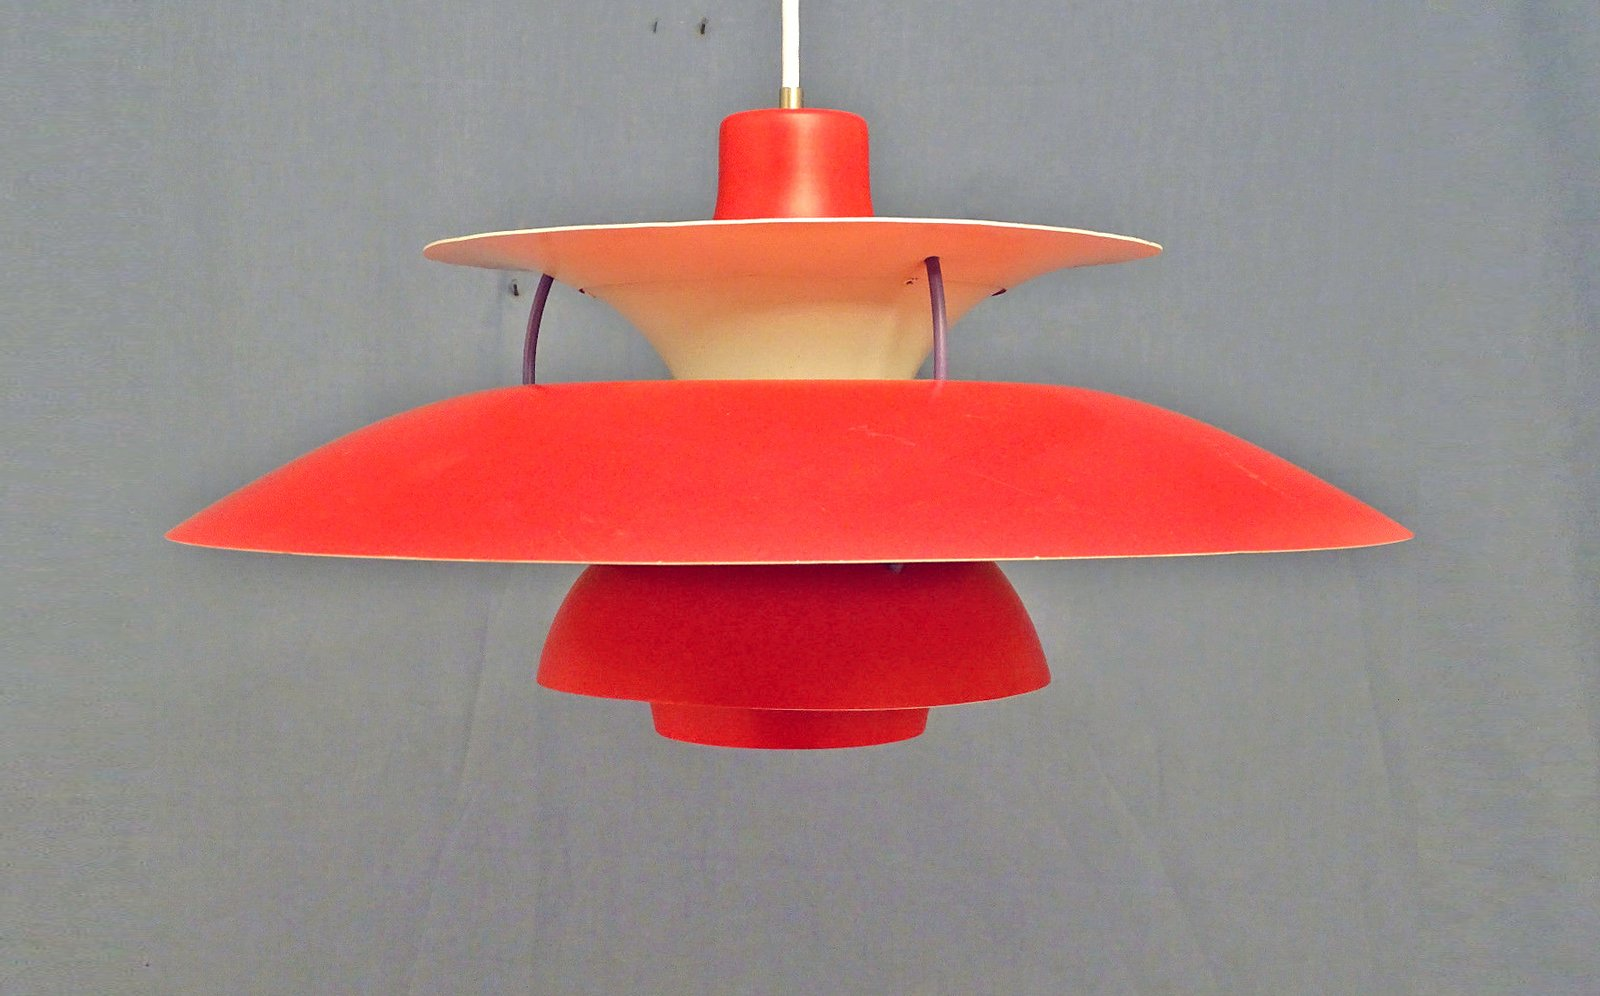 8 Midcentury Modern Pendant Lamps & Sconces on eBay